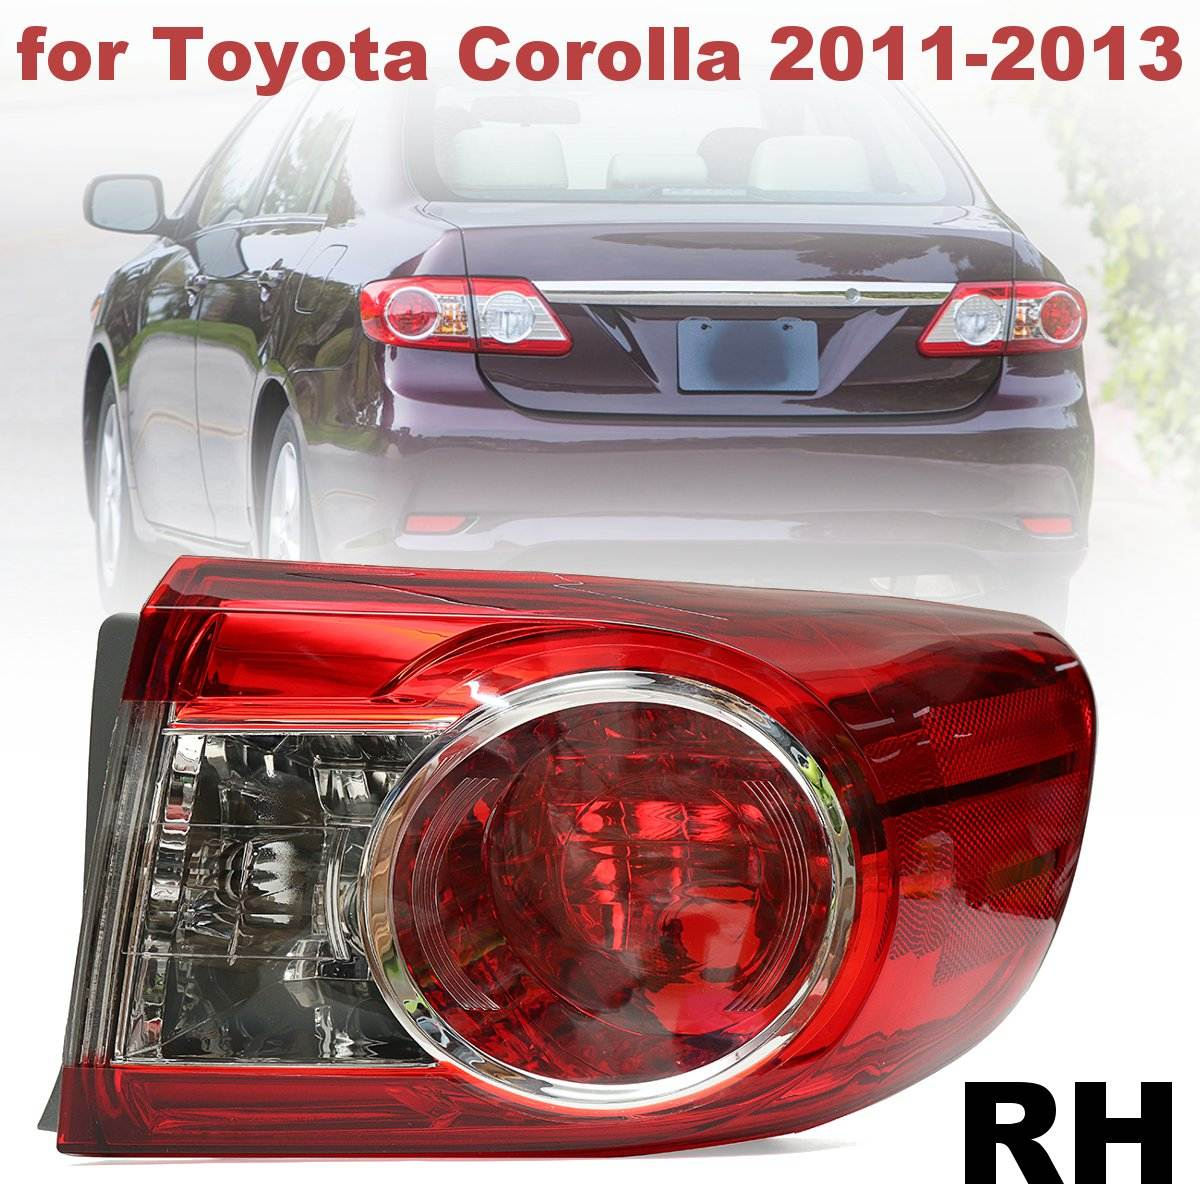 #TO2804111 #81560-02580 PMMA Red Rear Right Side Tail Light Brake Lamp for Toyota Corolla 2011 2012 2013 free shipping 2pc mudslinger body rear tail side graphic vinyl for toyota hilux vigo 2011 2012 2013 2014decals